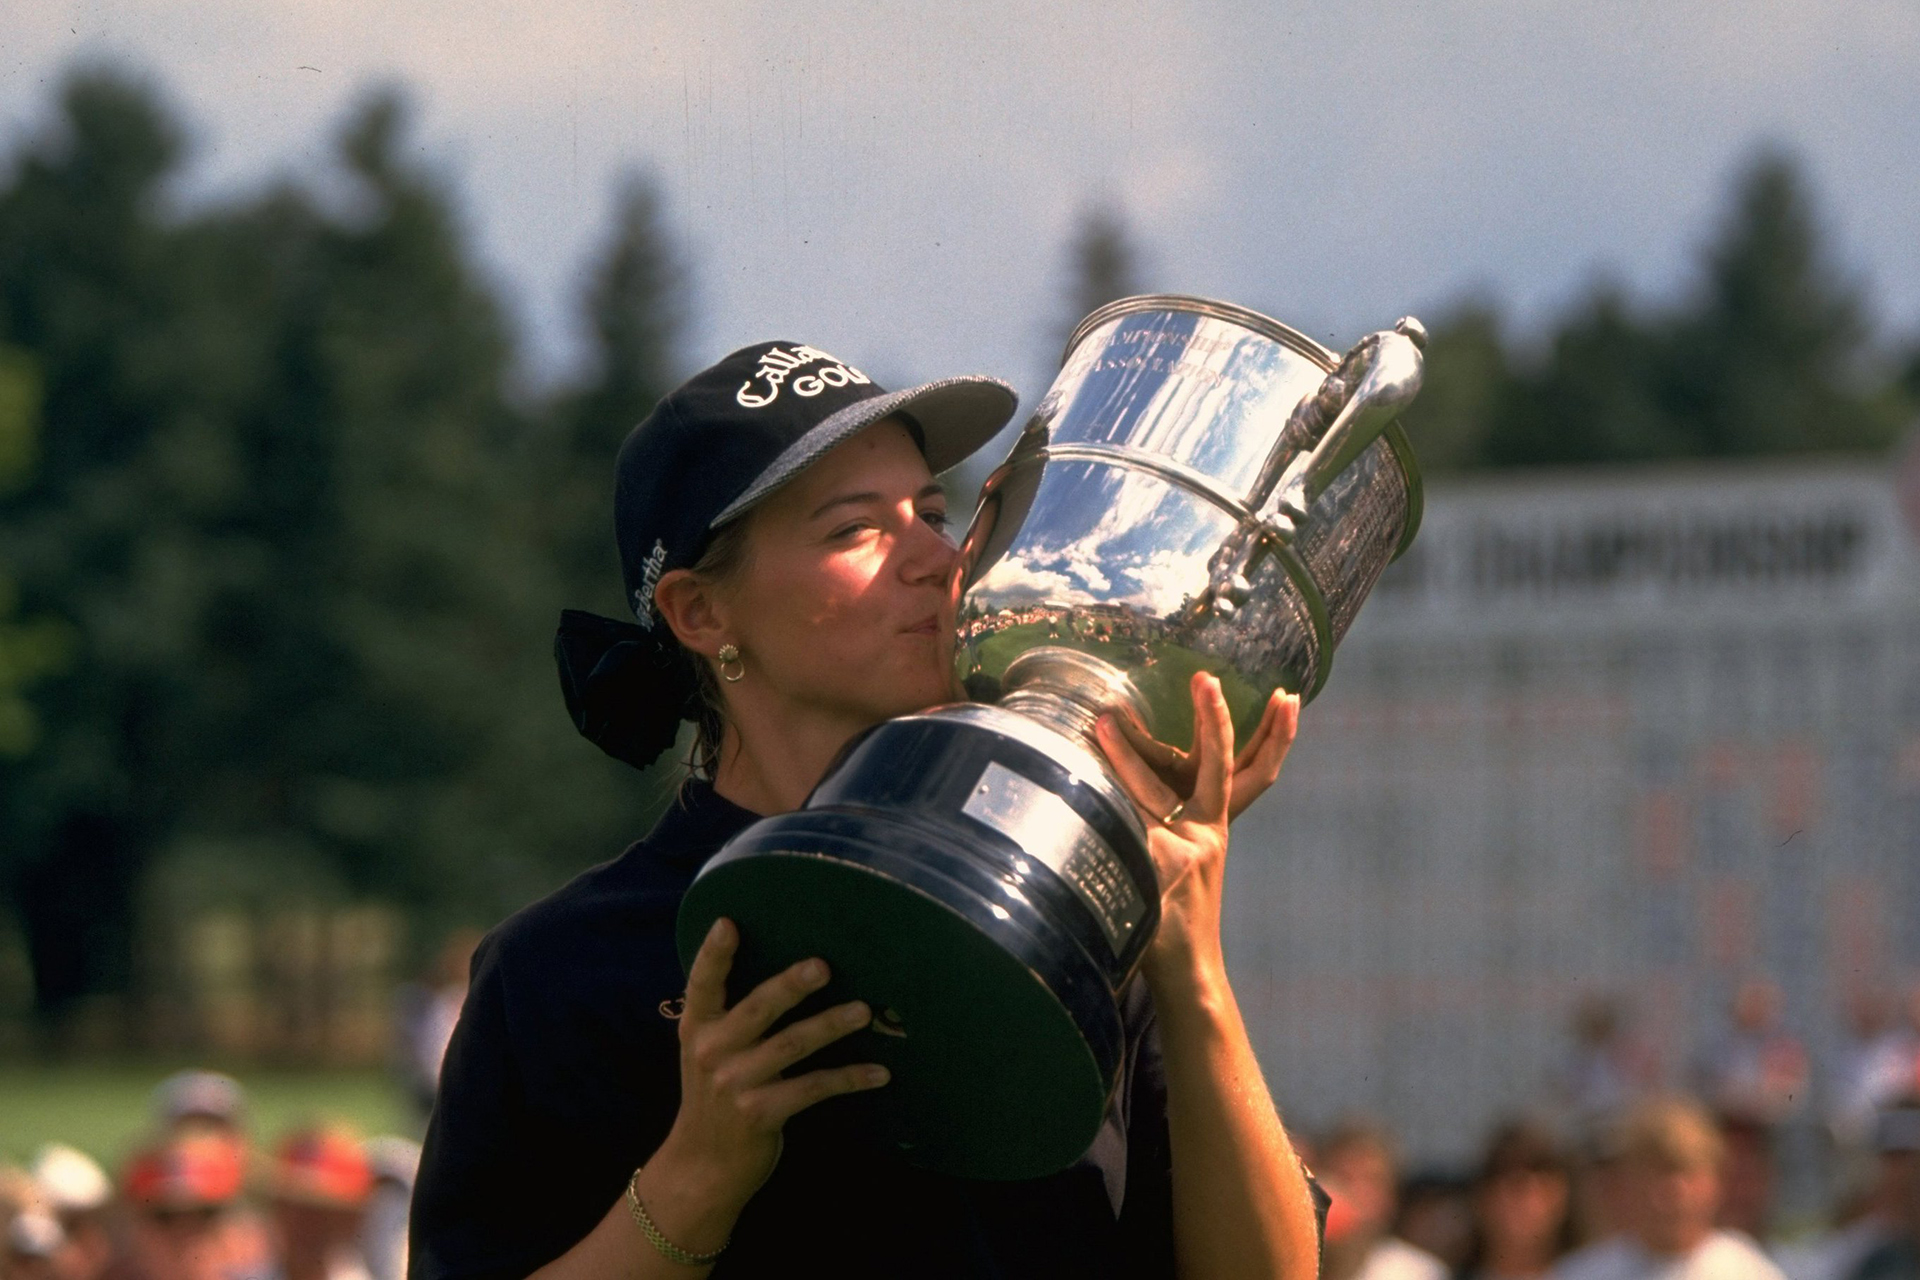 Golf: US Women's Open: Annika Sorenstam victorious with trophy after tournament at The Broadmoor GC. Colorado Springs, CO 7/16/1995 CREDIT: Jim Gund (Photo by Jim Gund /Sports Illustrated/Getty Images) (Set Number: X48701 )